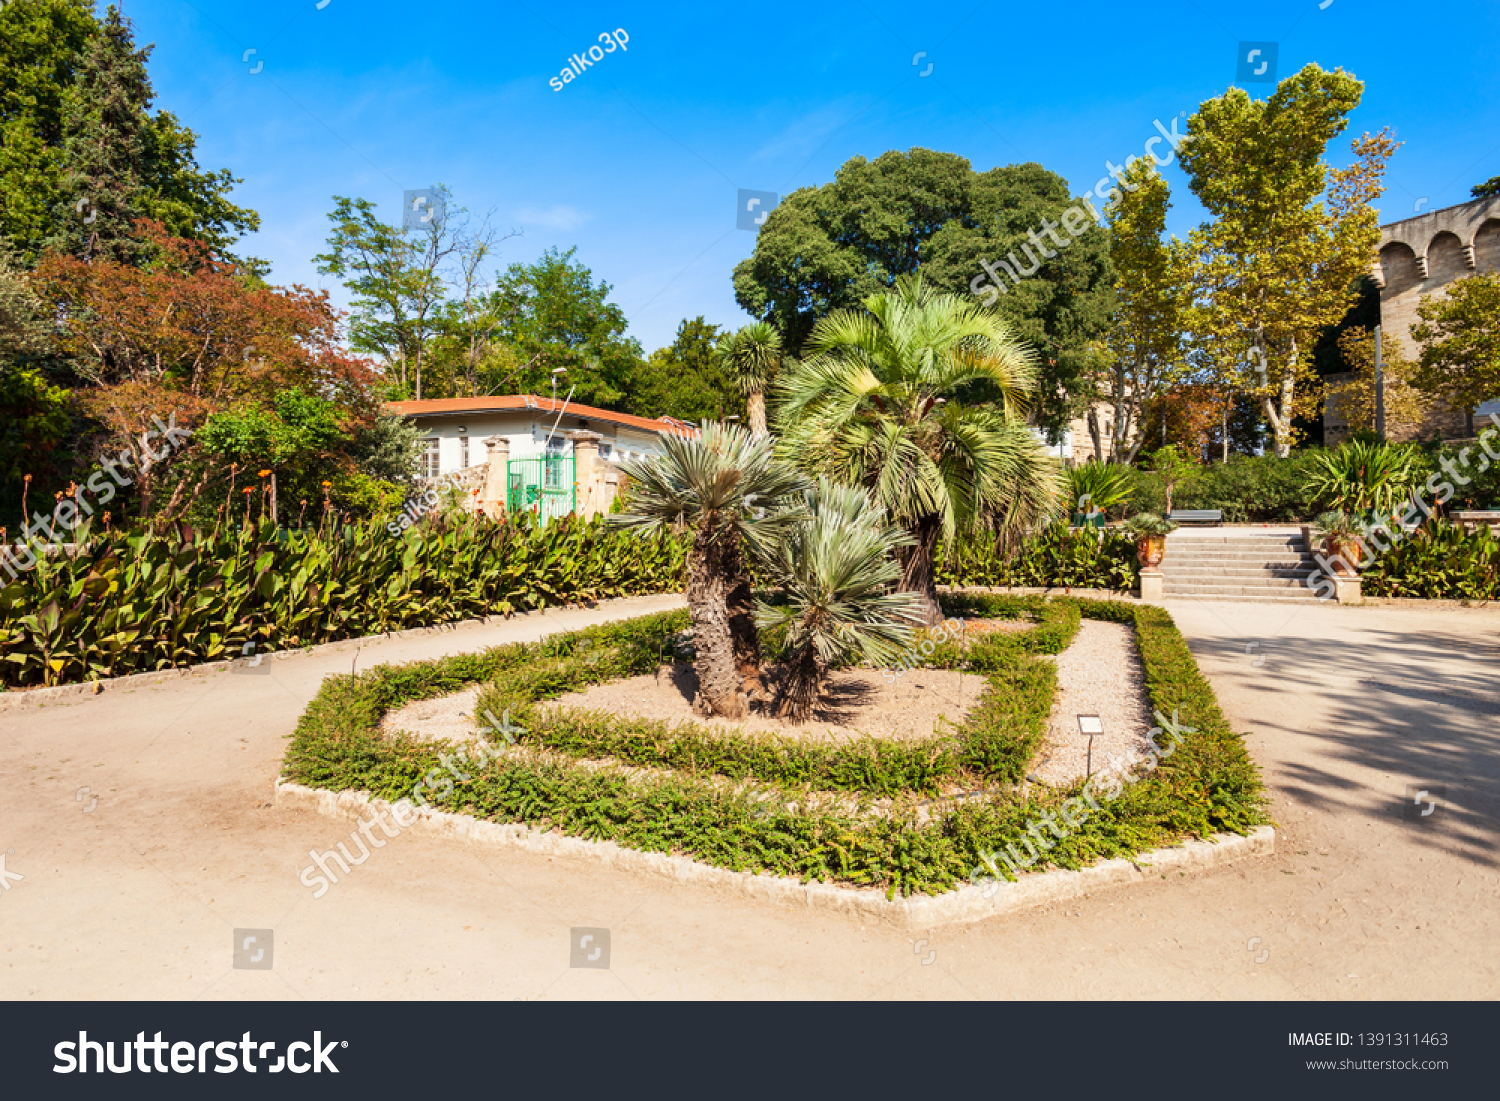 stock photo the jardin des plantes de montpellier is a public botanical garden in montpellier city france